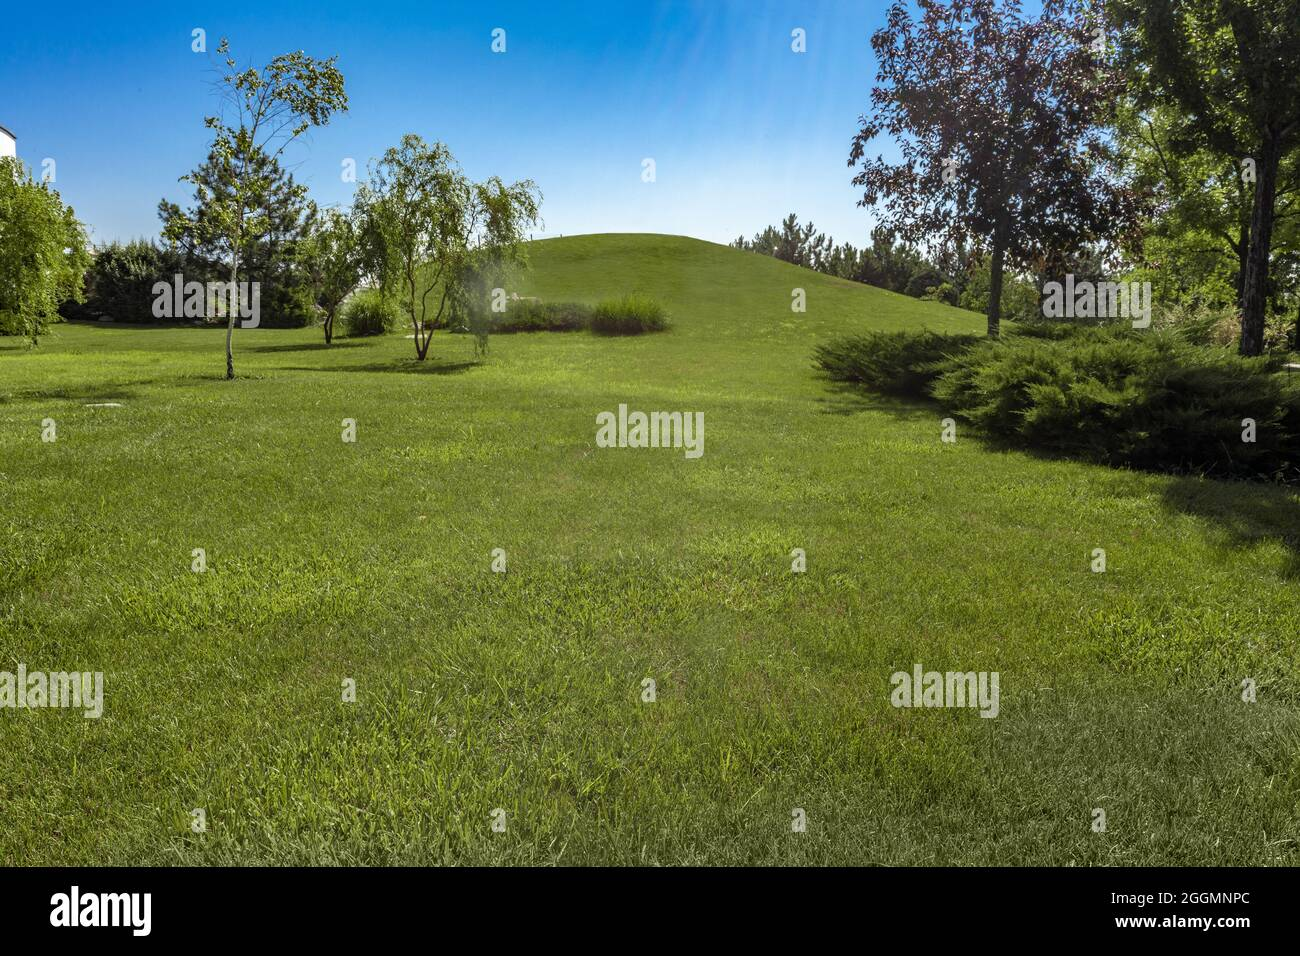 Summer landscape with hill covered with green grass surrounded by trees Stock Photo